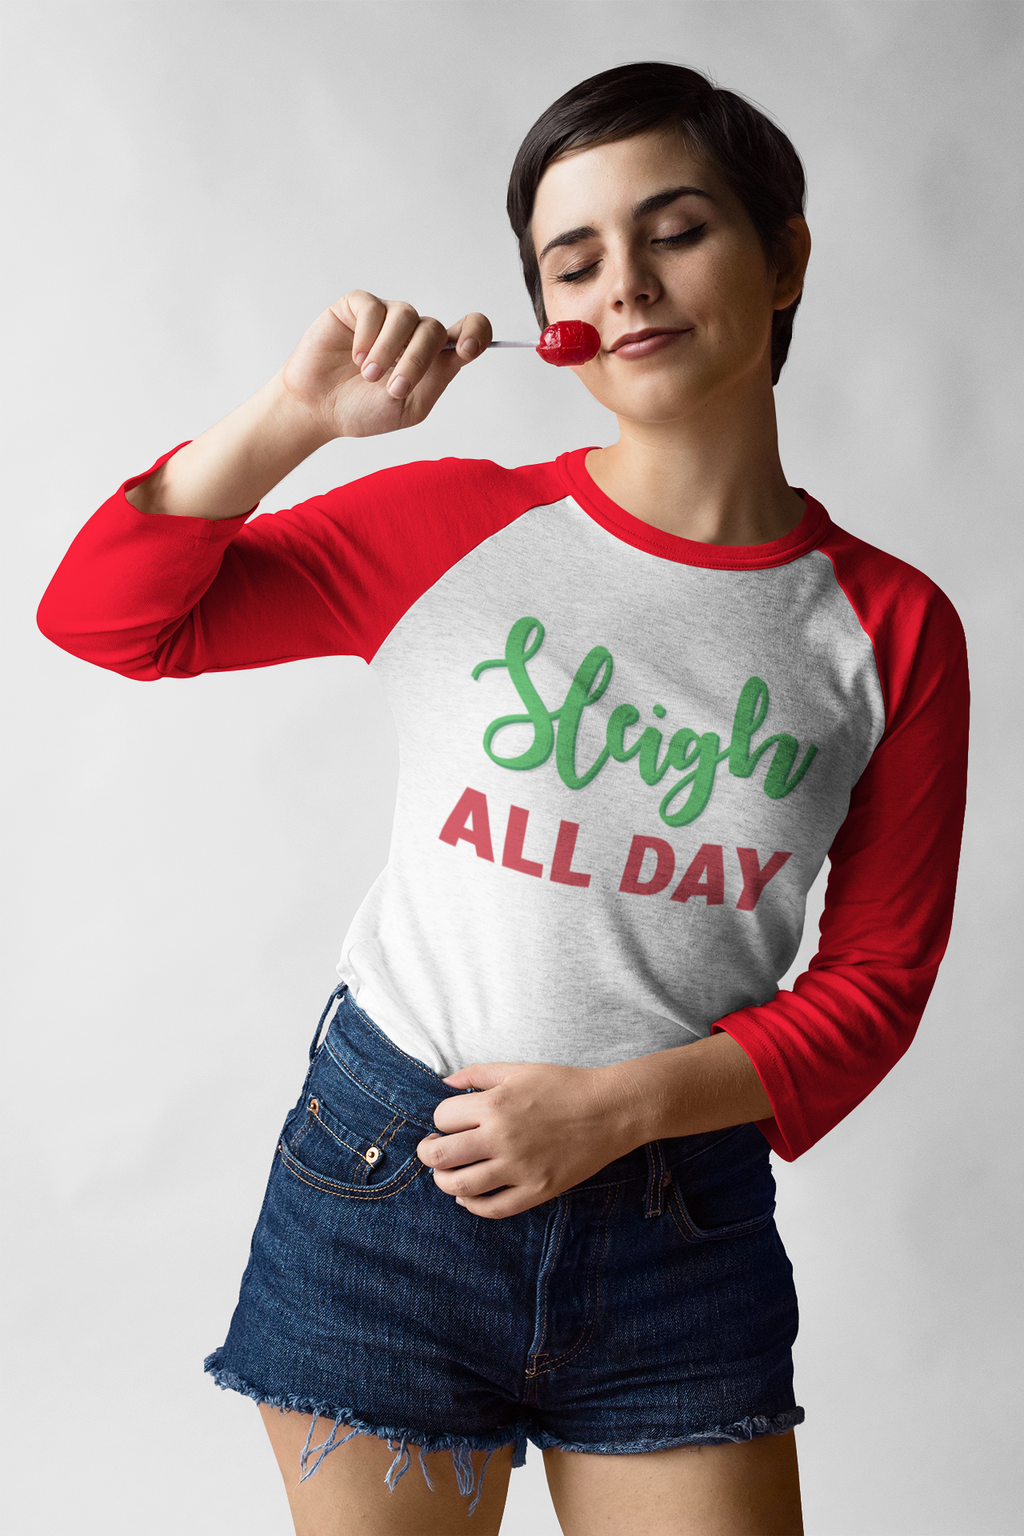 Sleigh All Day Baseball T-Shirt